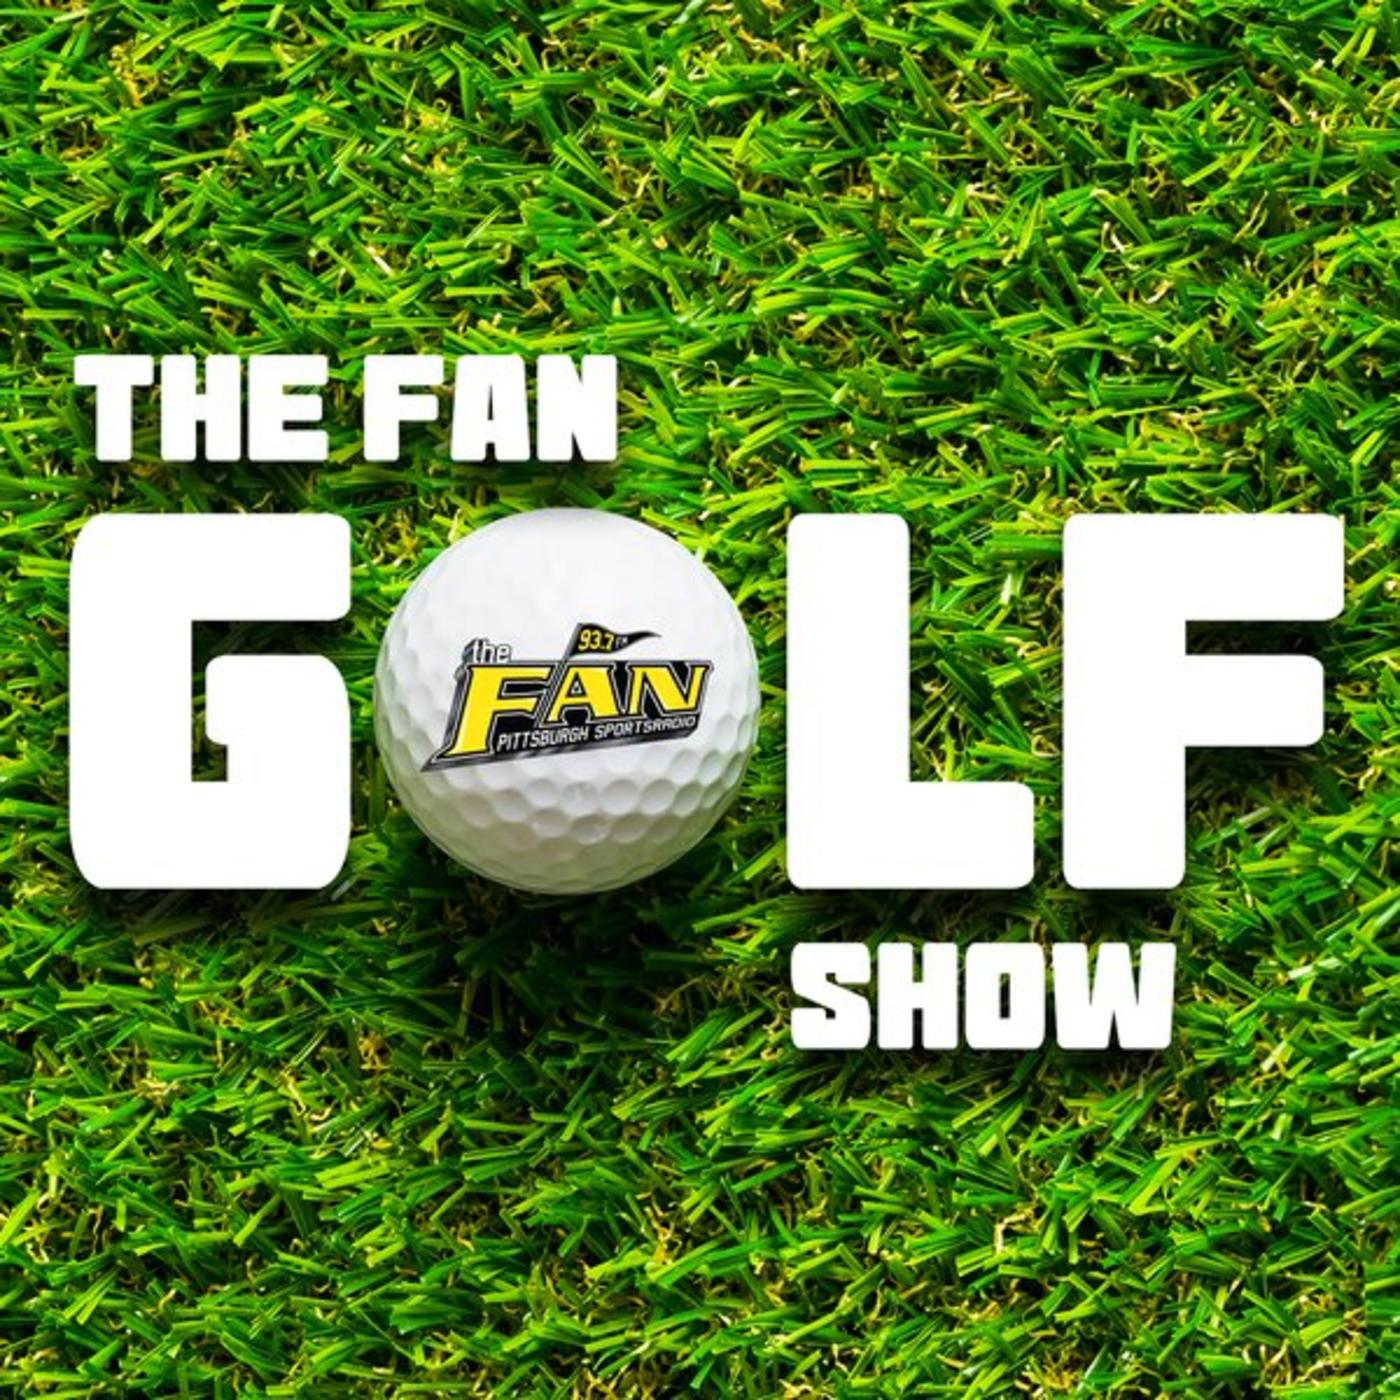 The Fan Golf Show